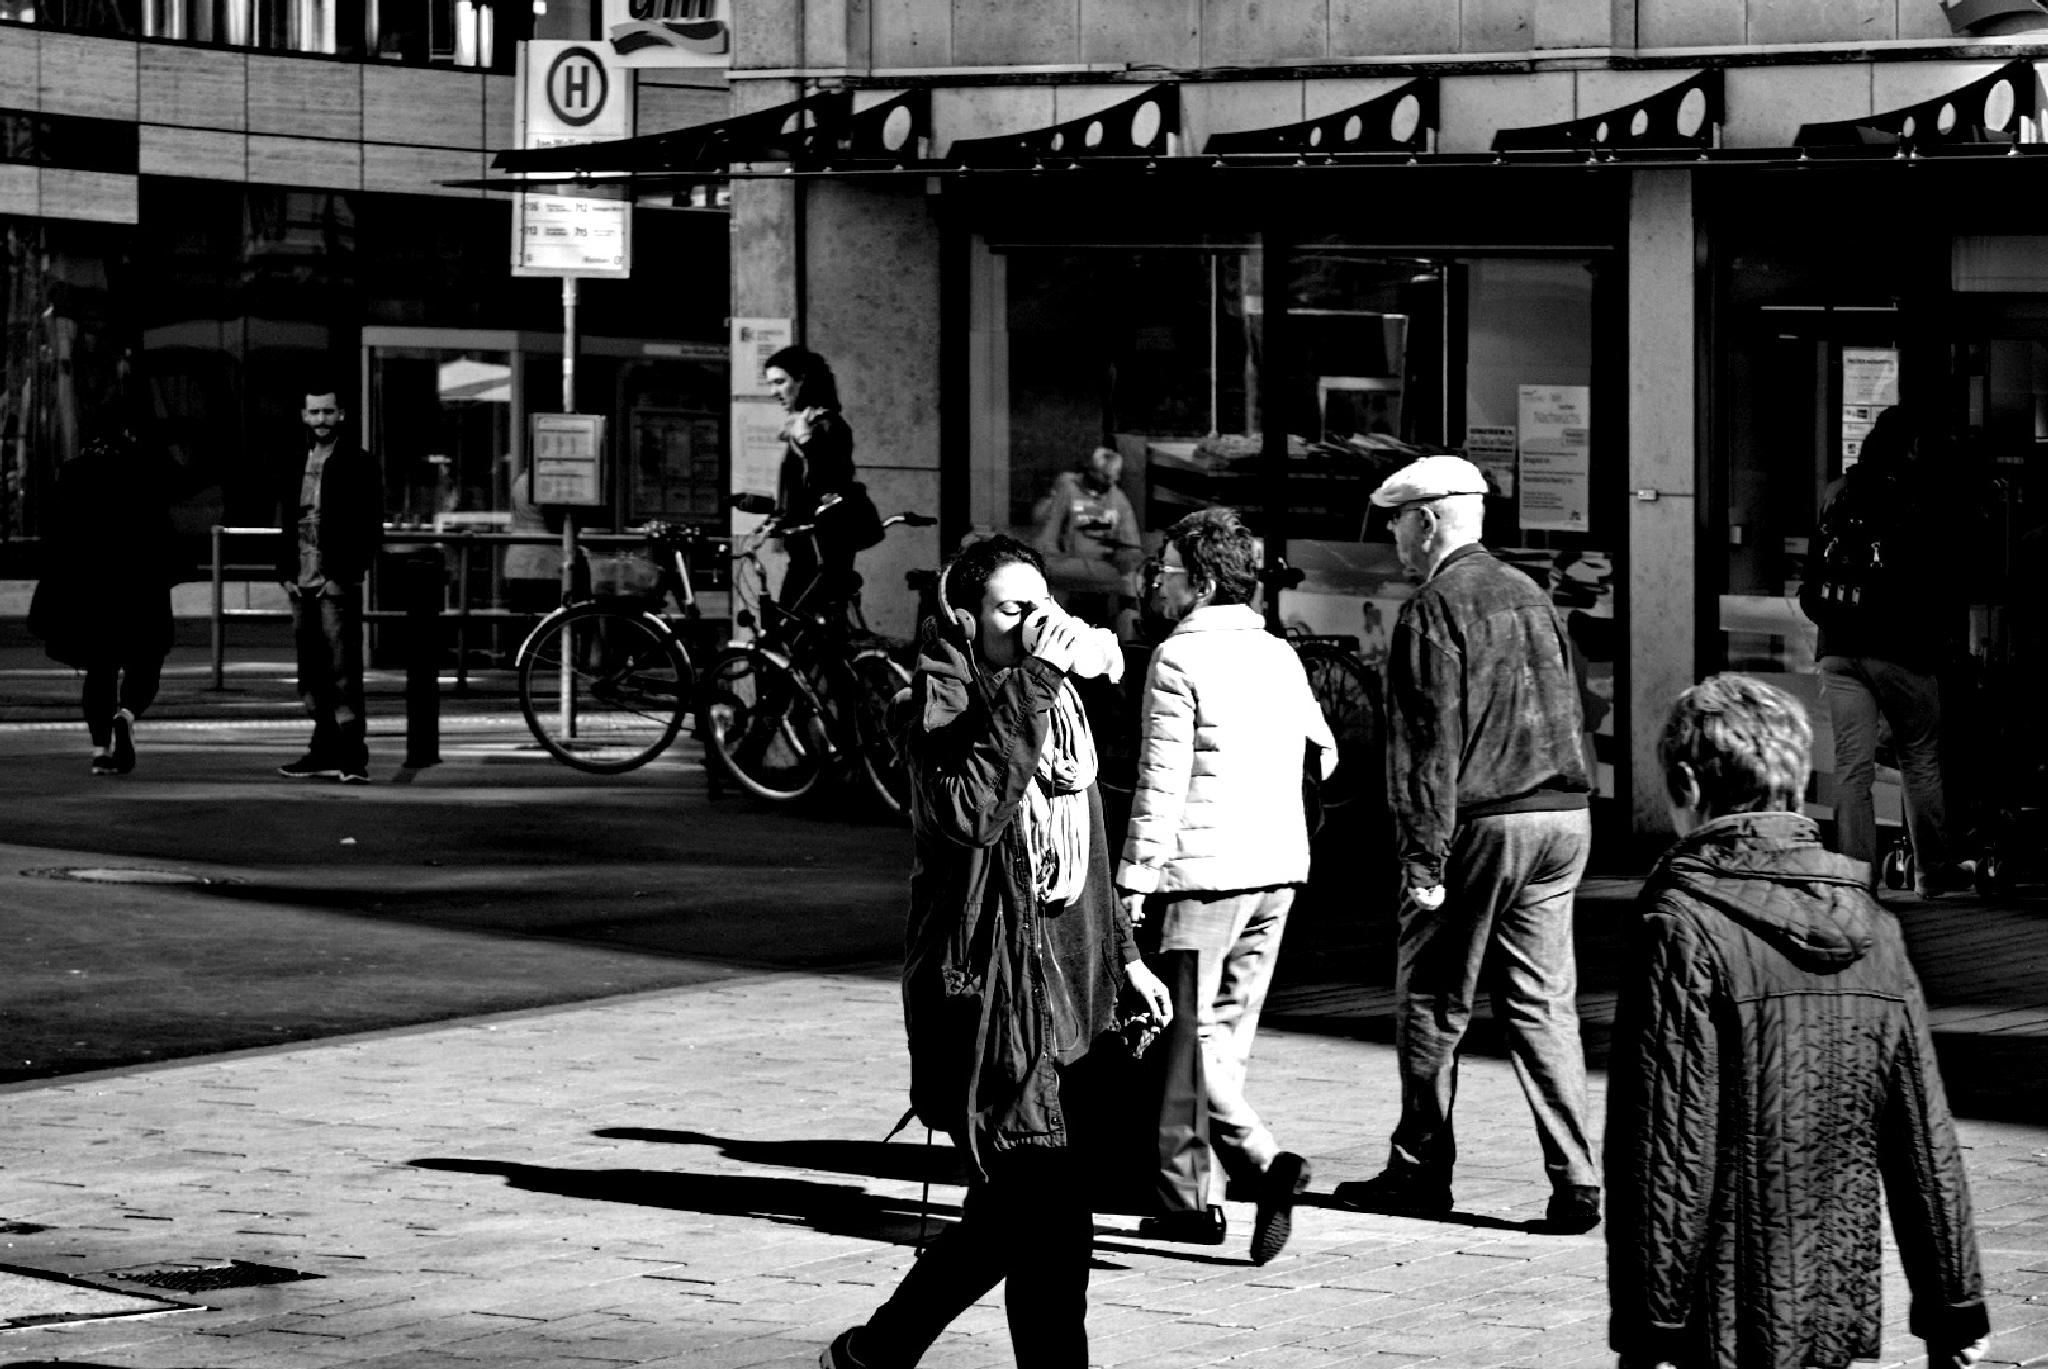 . . . . ... the way through the city, with coffee and music by Underground Photography